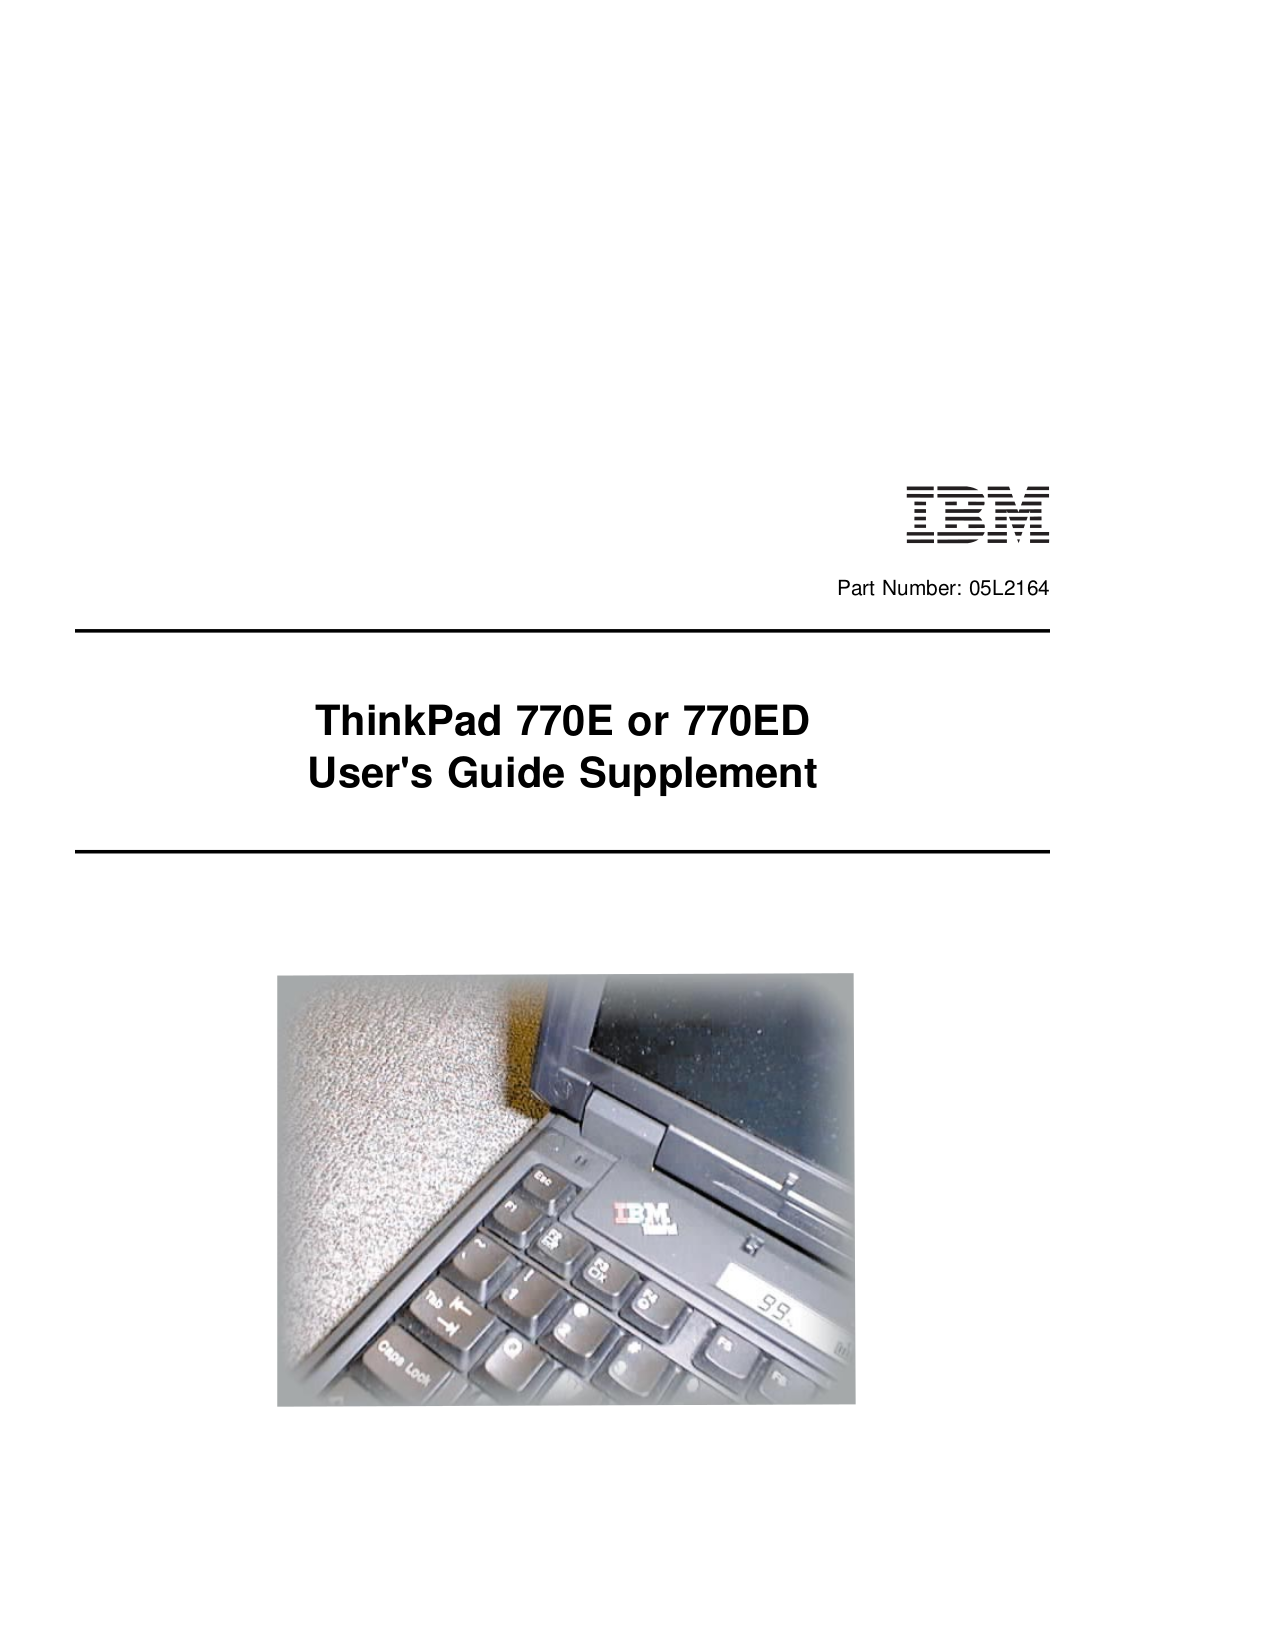 pdf for IBM Laptop ThinkPad 770X manual